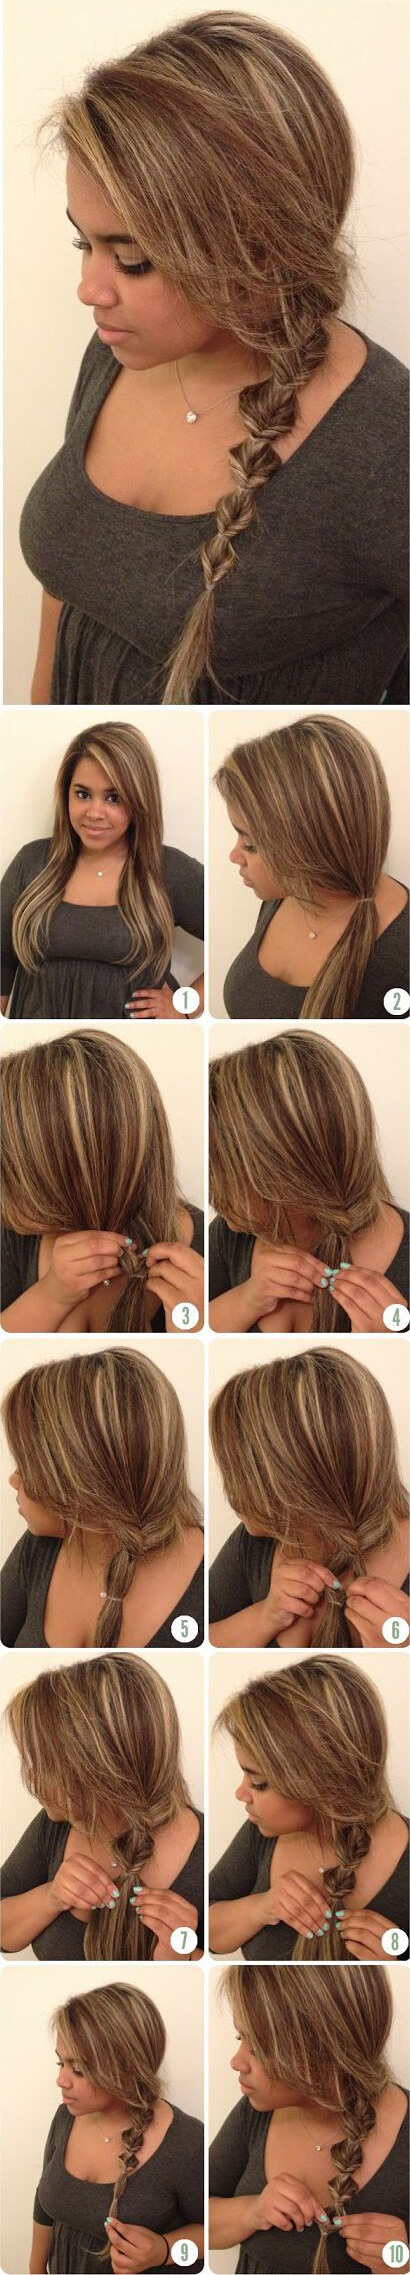 An easy twisted braid you can do in minutes.